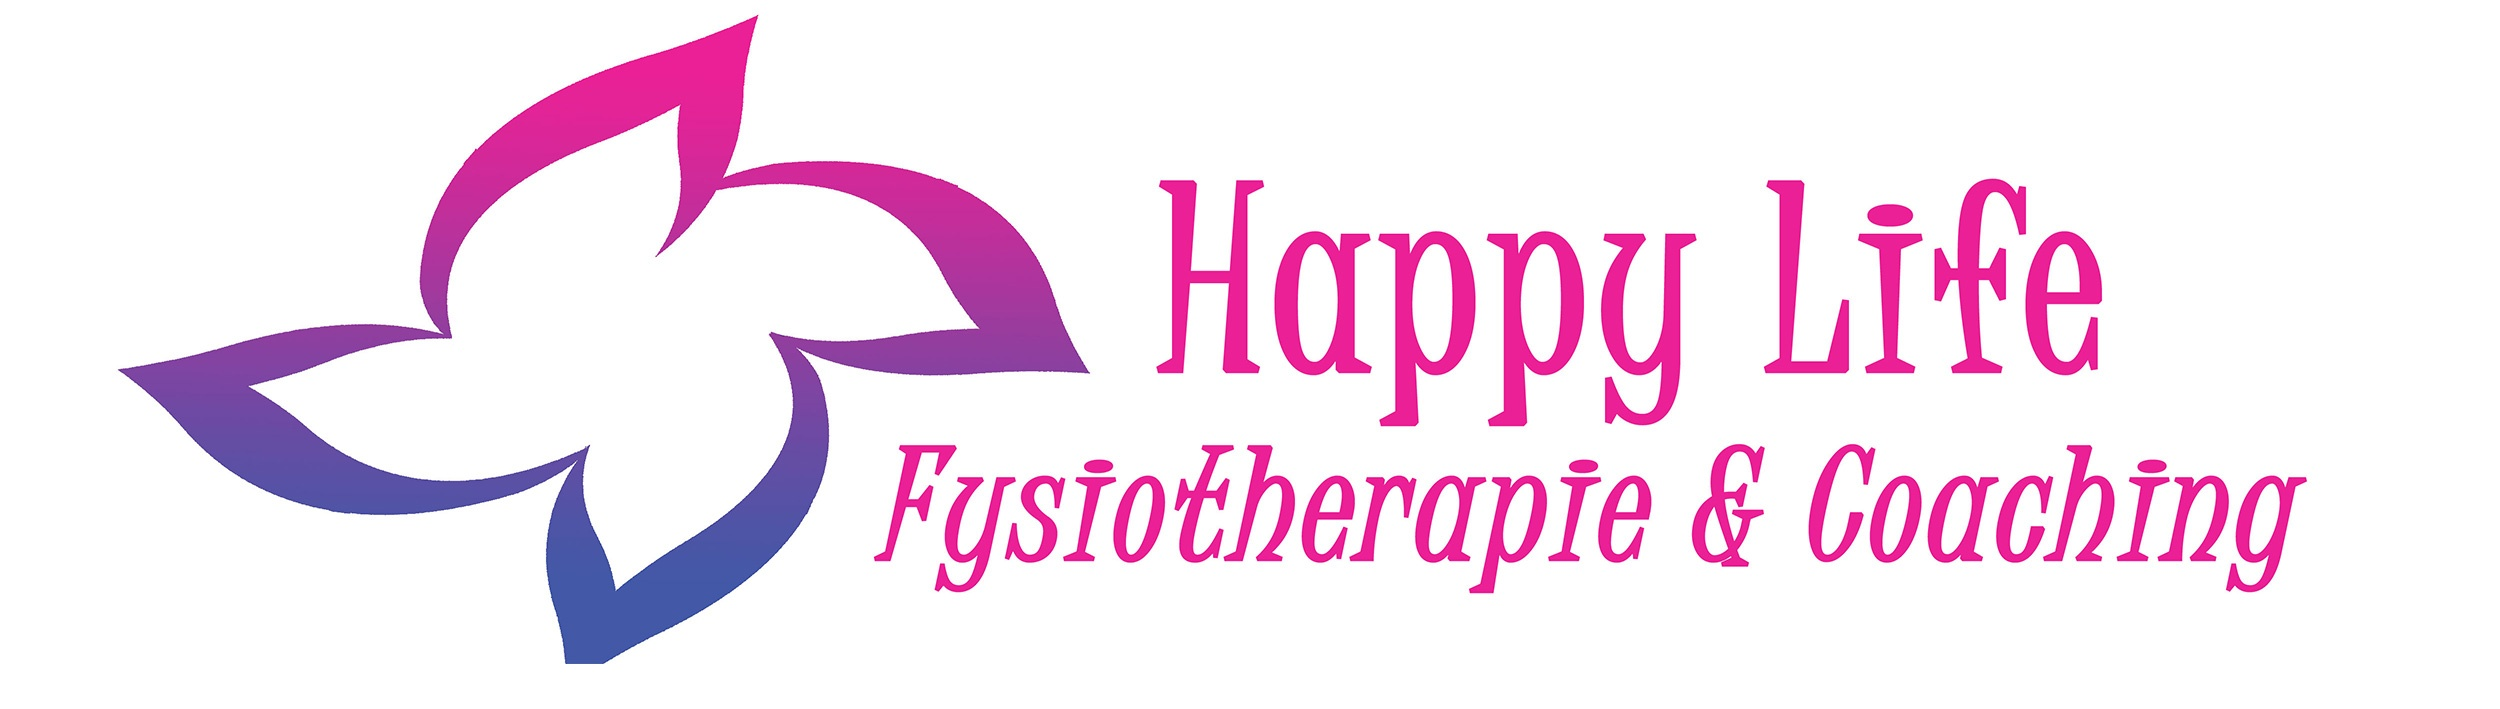 Happy Life Fysiotherapie & Coaching Zeist